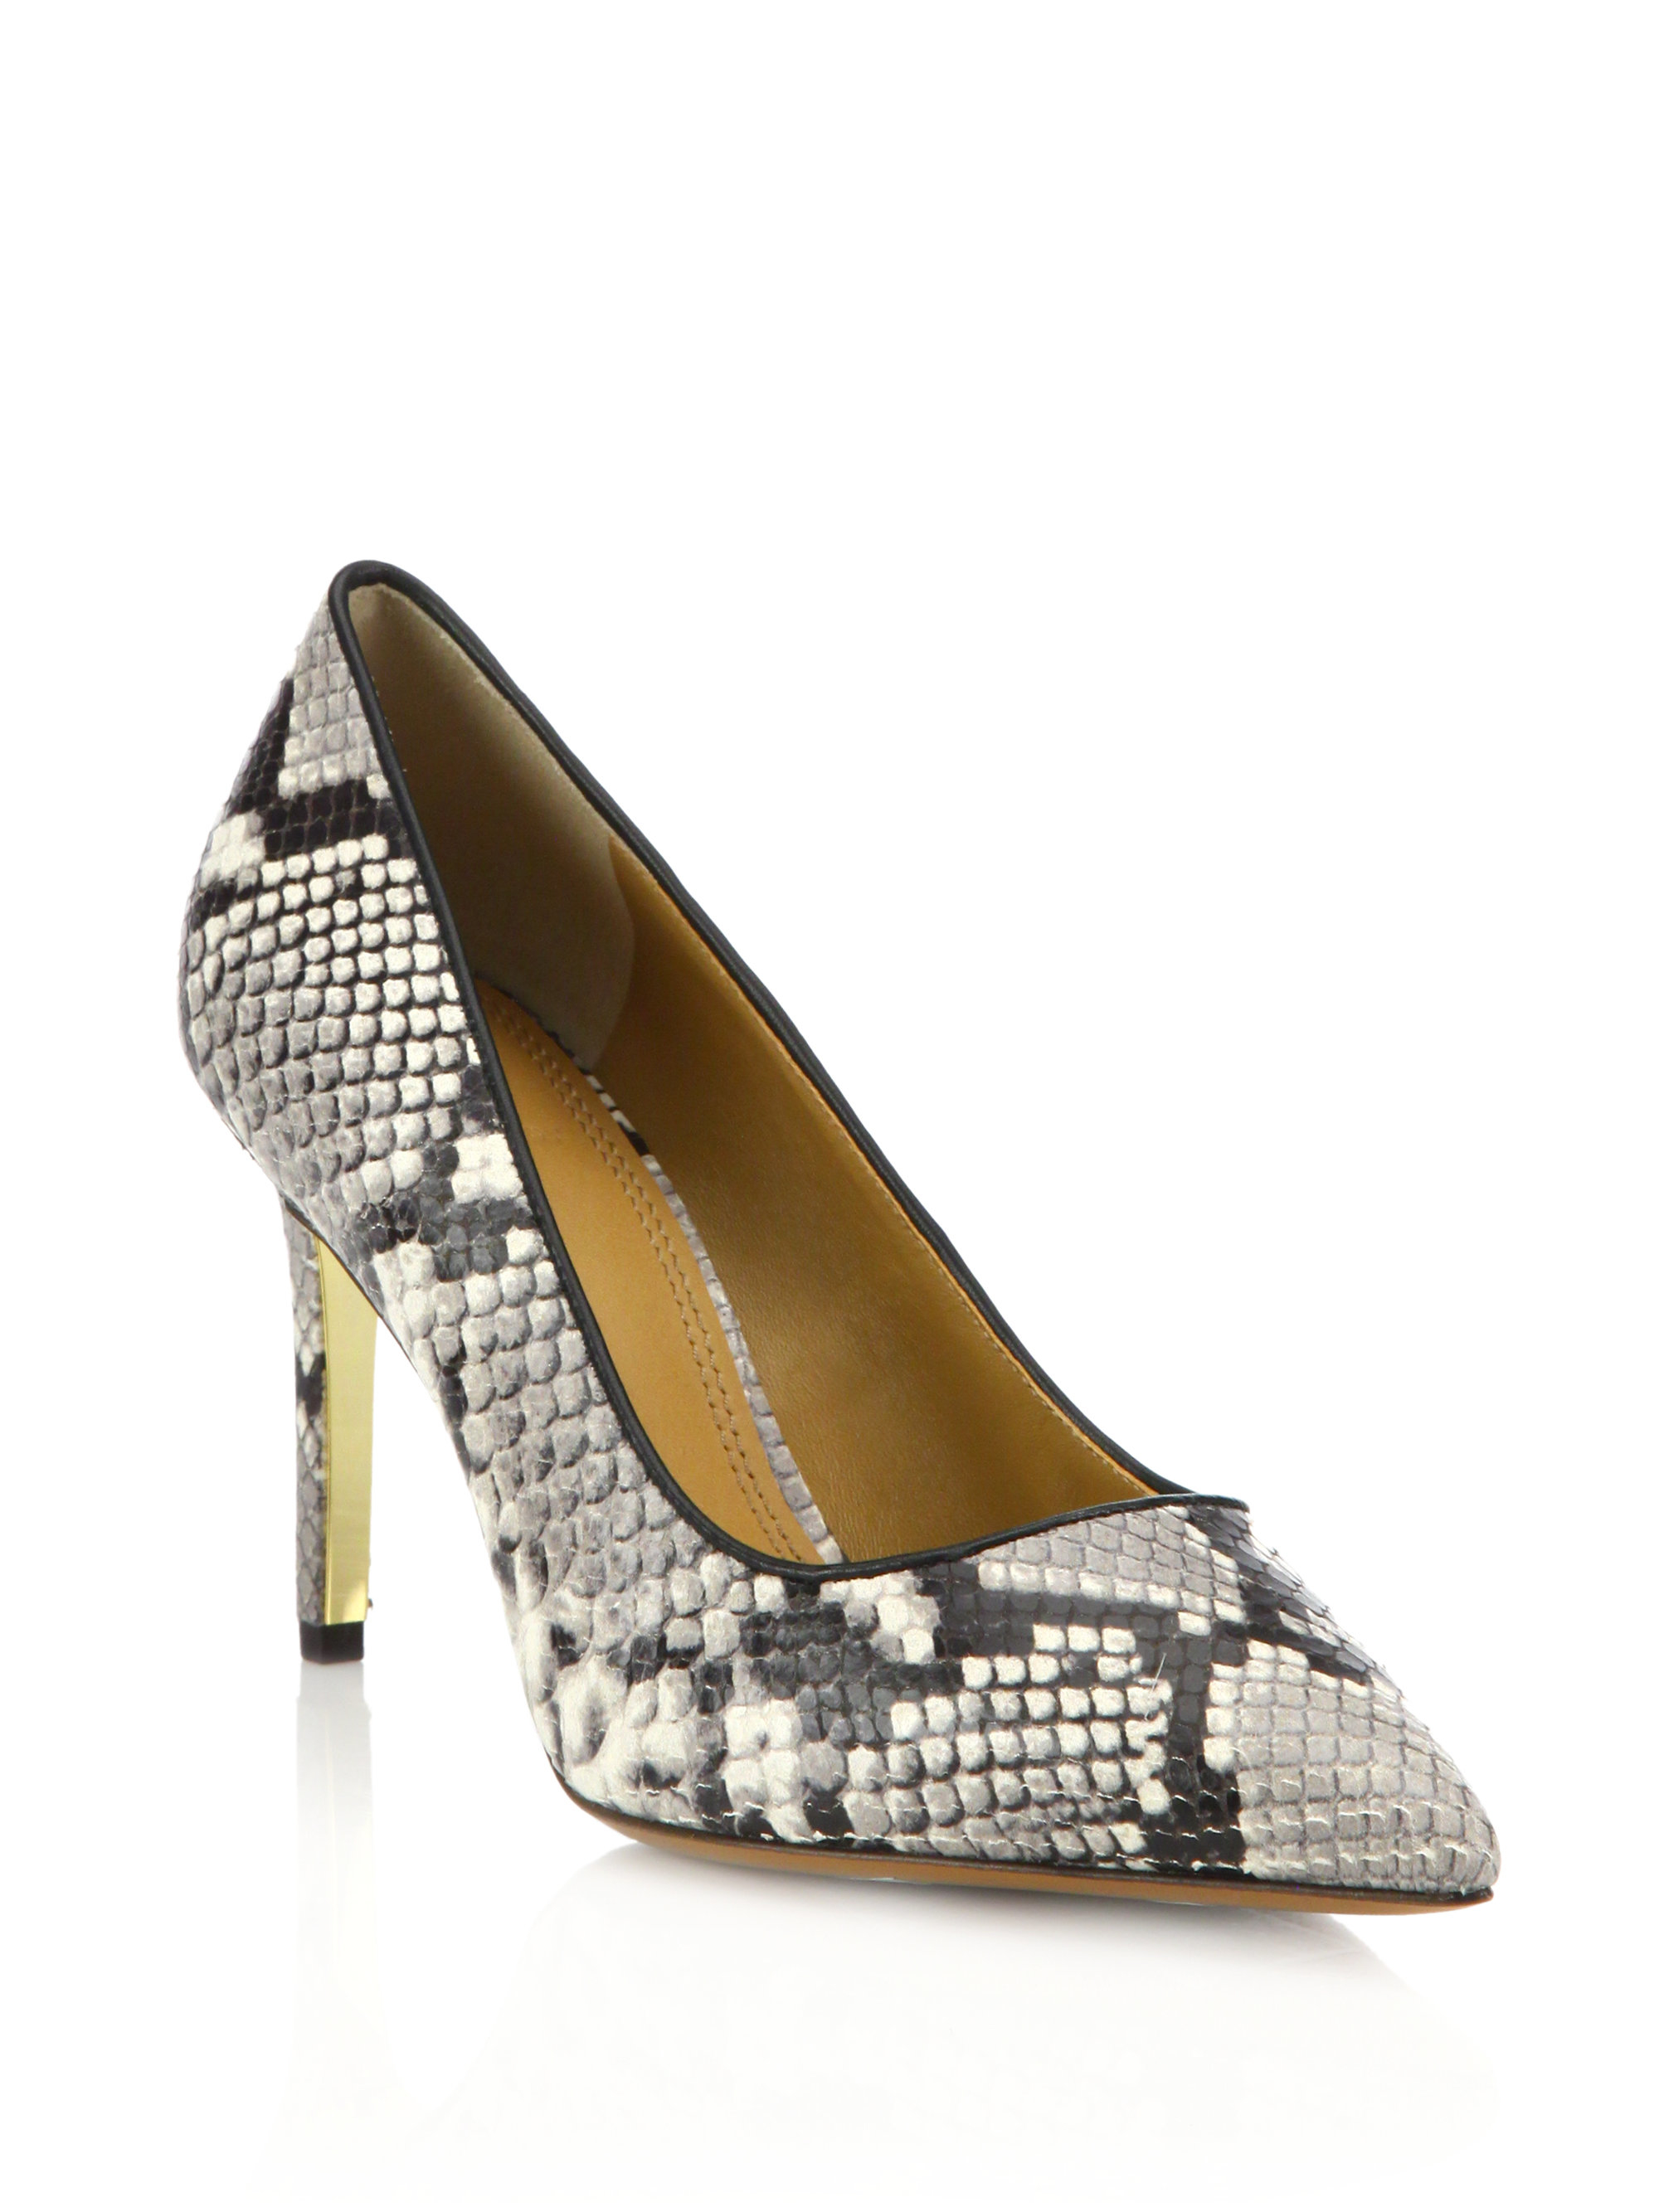 Tory Burch Satin Printed Pumps outlet locations cheap price RxMcipp60E